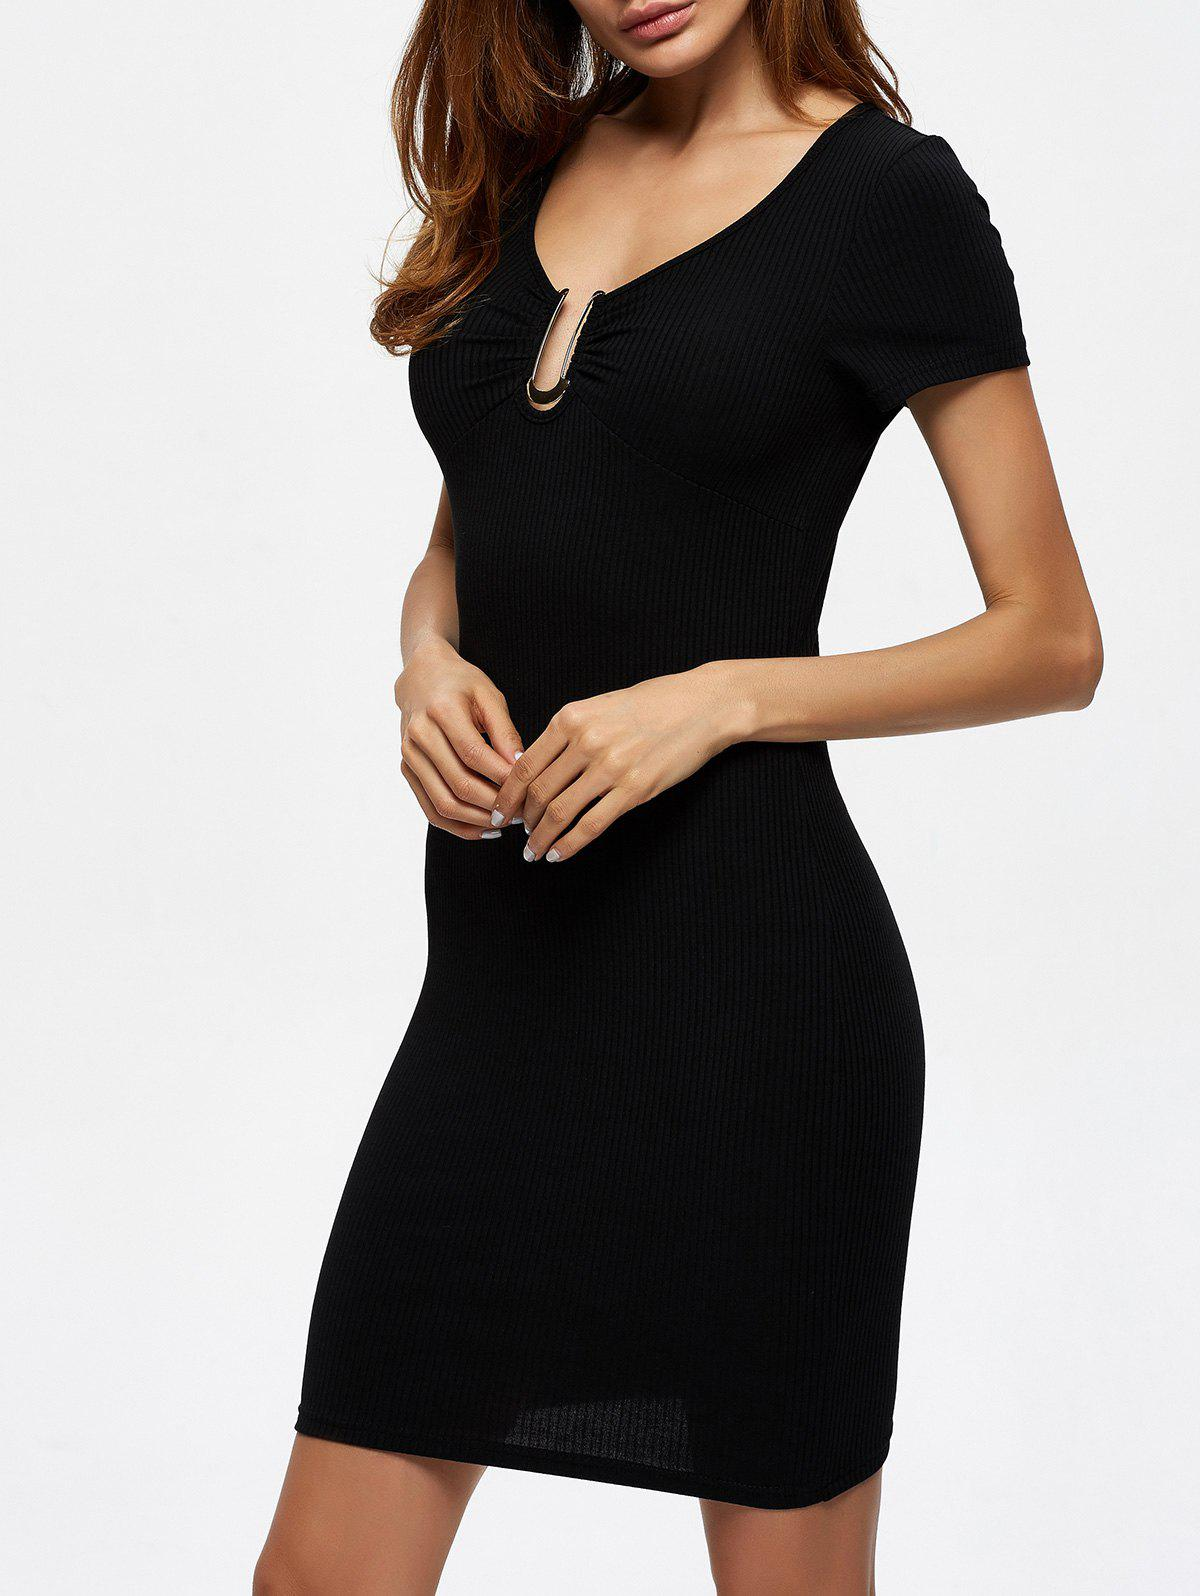 Ruched Ribbed Knit Bodycon Dress with Metal bar iii new women s small s black ponte knit lace trim ribbed bodycon dress $79